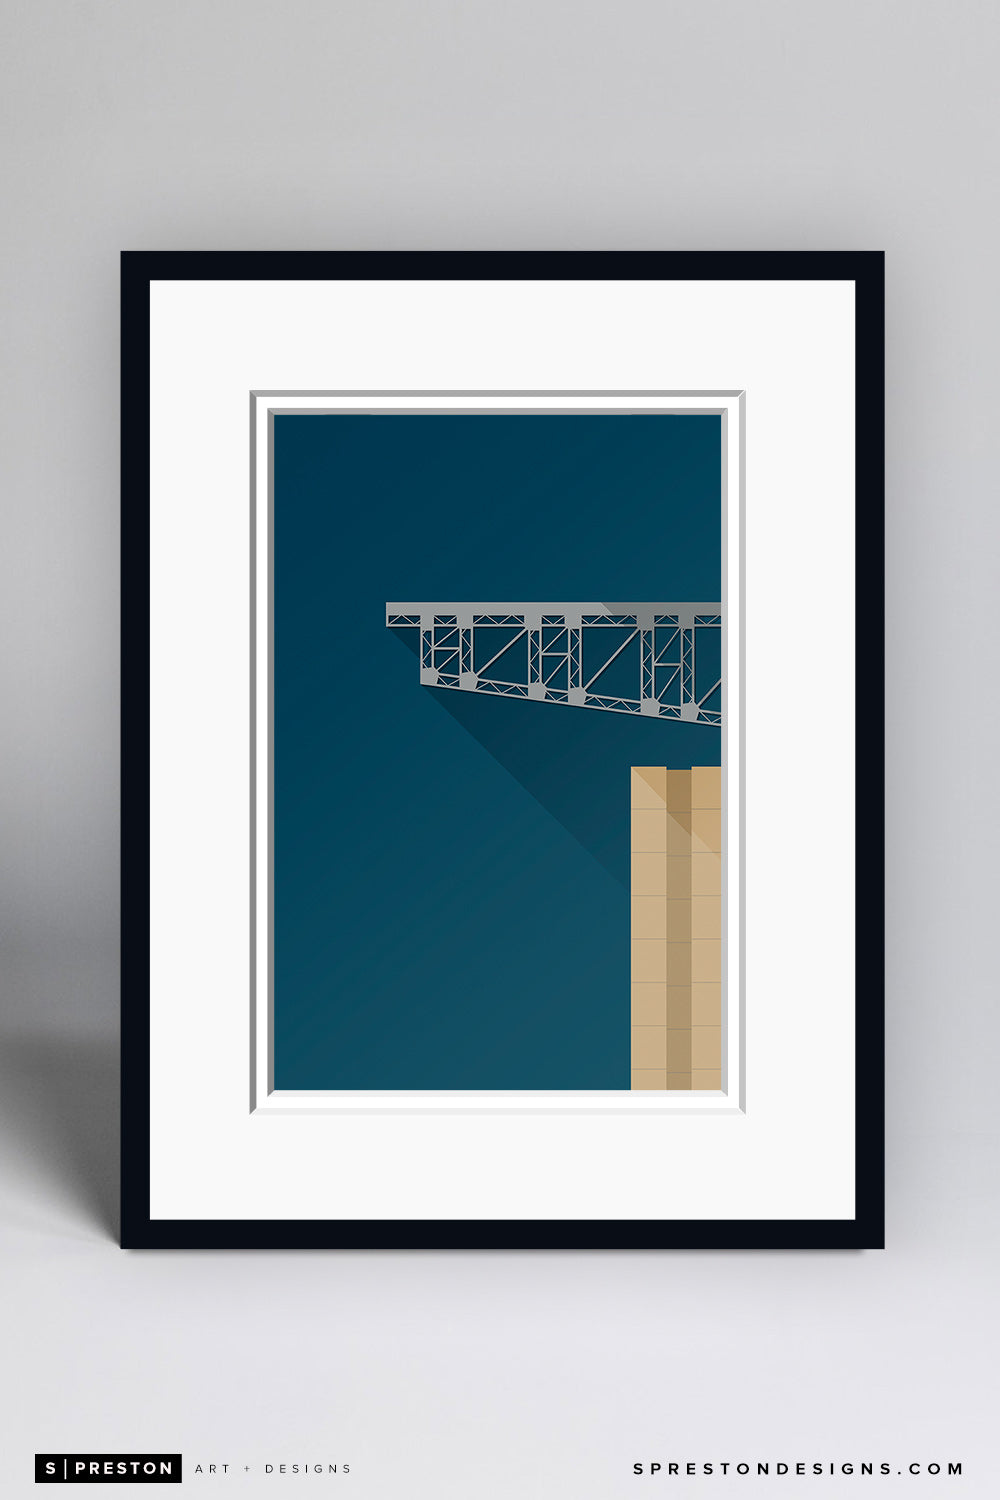 Minimalist NRG Stadium Art Print - Houston Texans - S. Preston Art + Designs